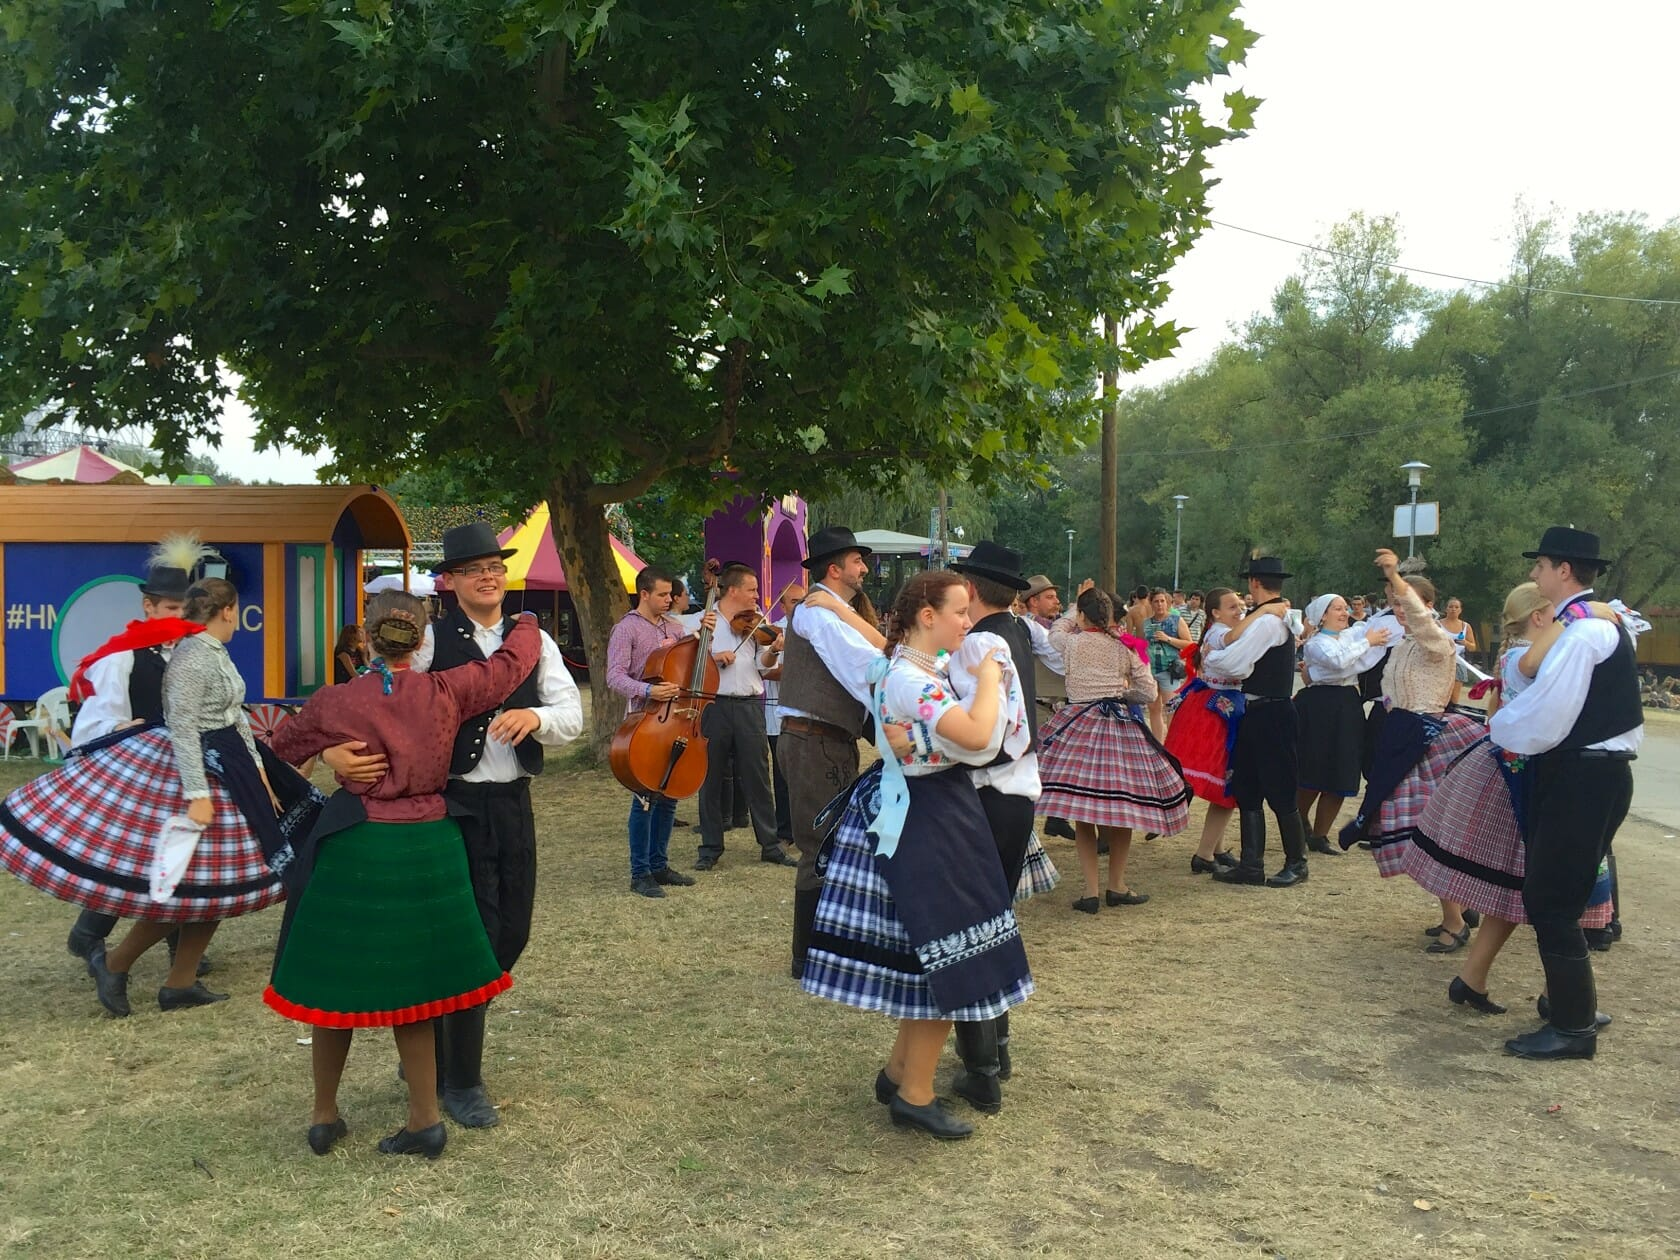 sziget review + festival guide for sziget festival in budapest august hungarikum village